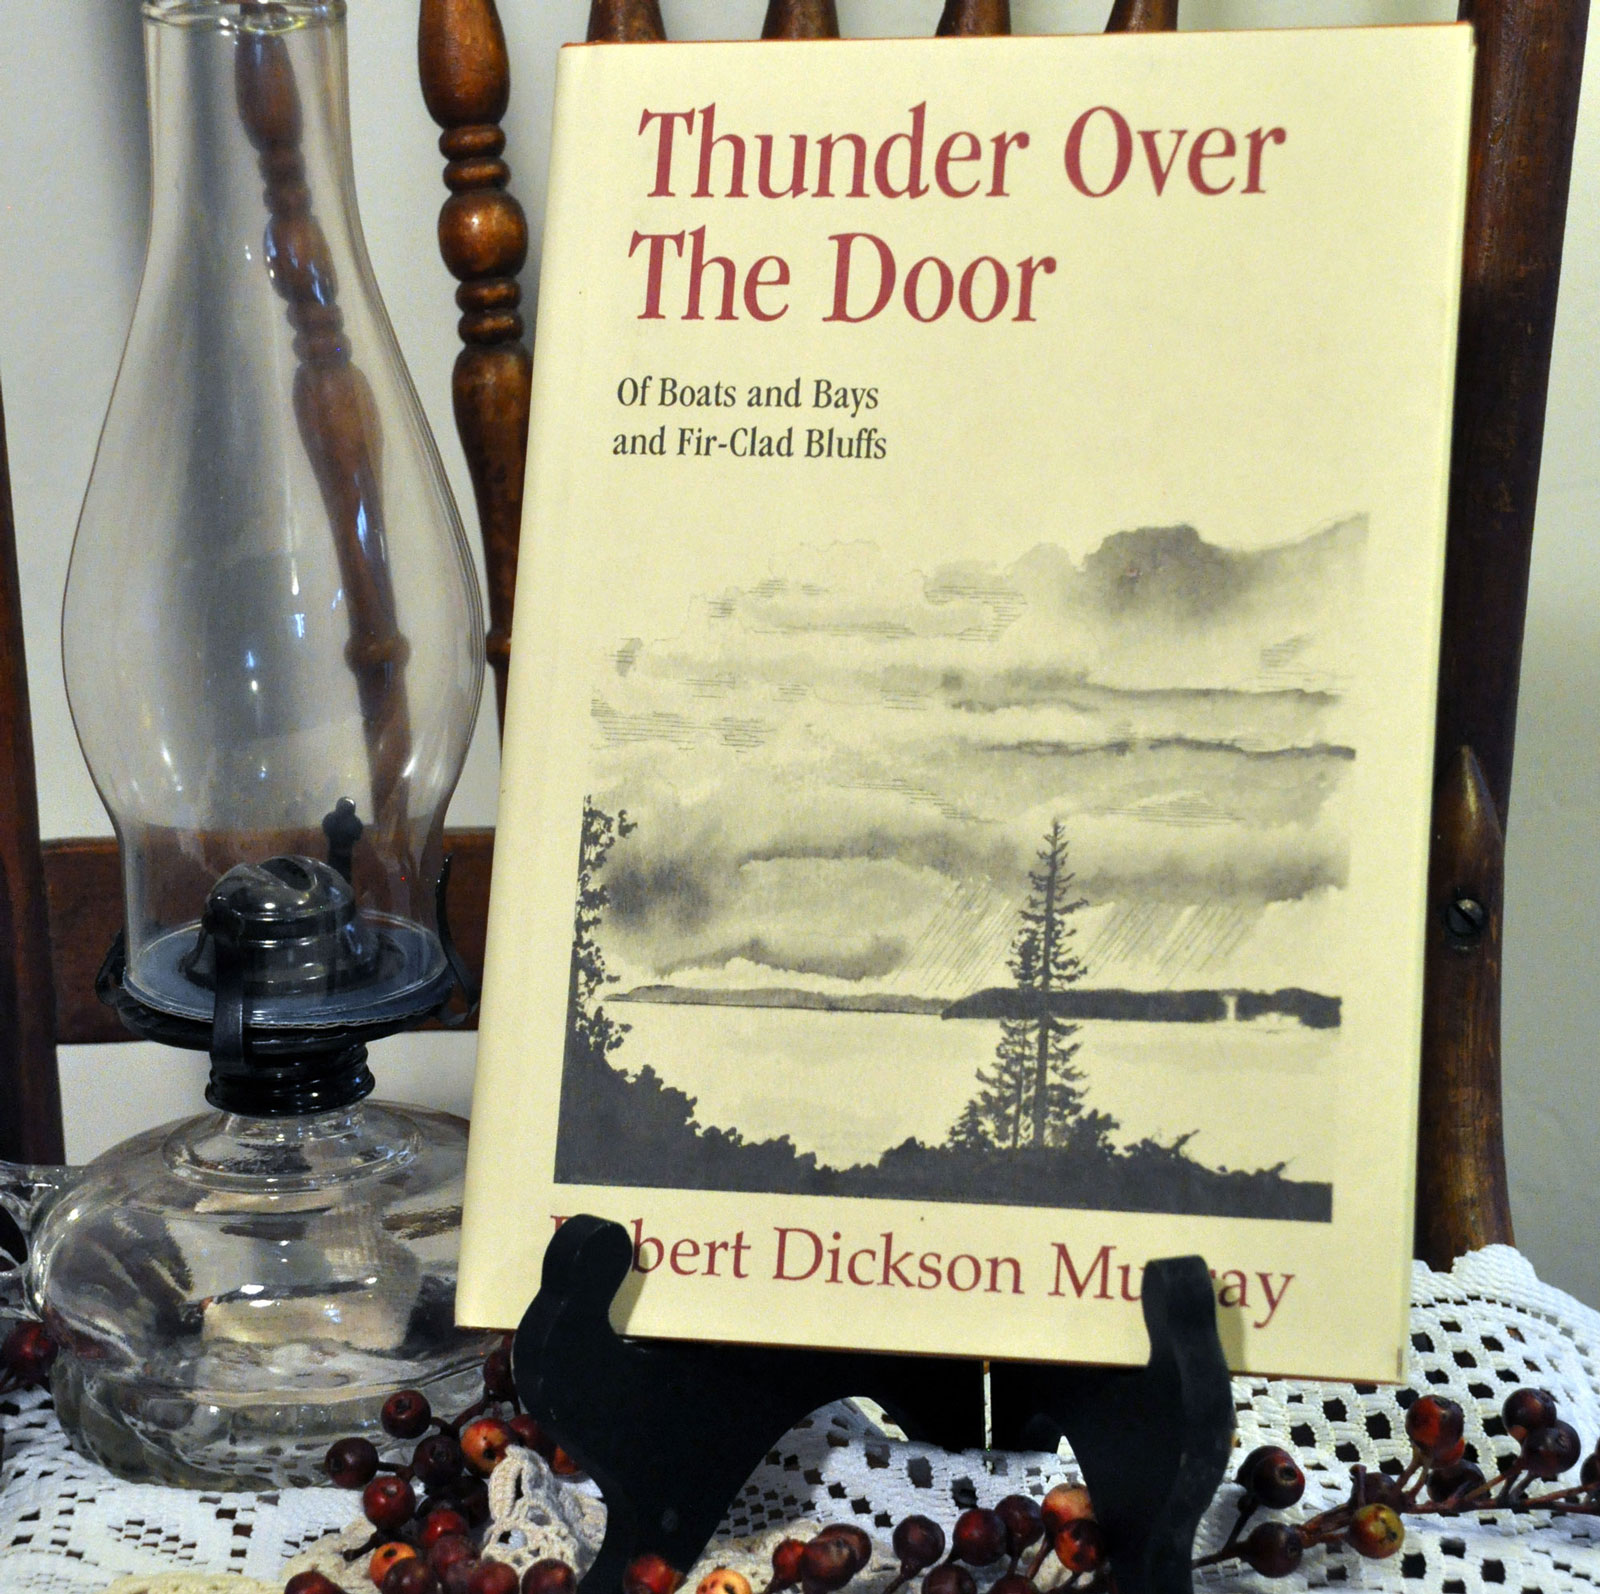 Thunder Over the Door: Of Boats and Bays and Fir-Clad Bluffs by Robert Dickson Murray